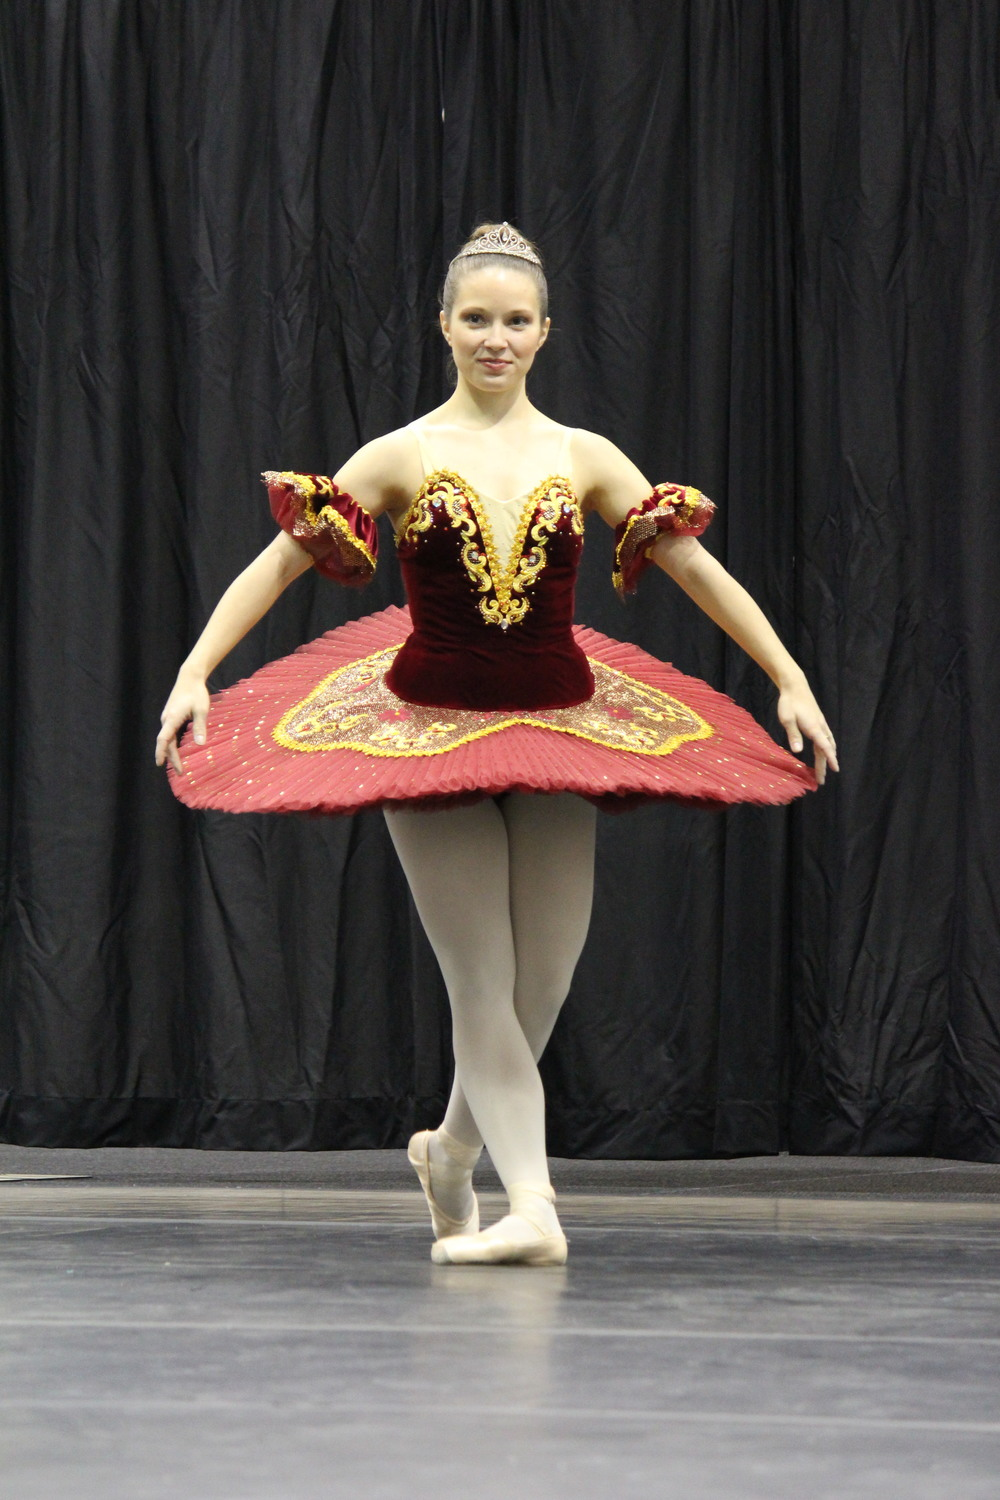 2013 - Aja Birch from Dance Elite